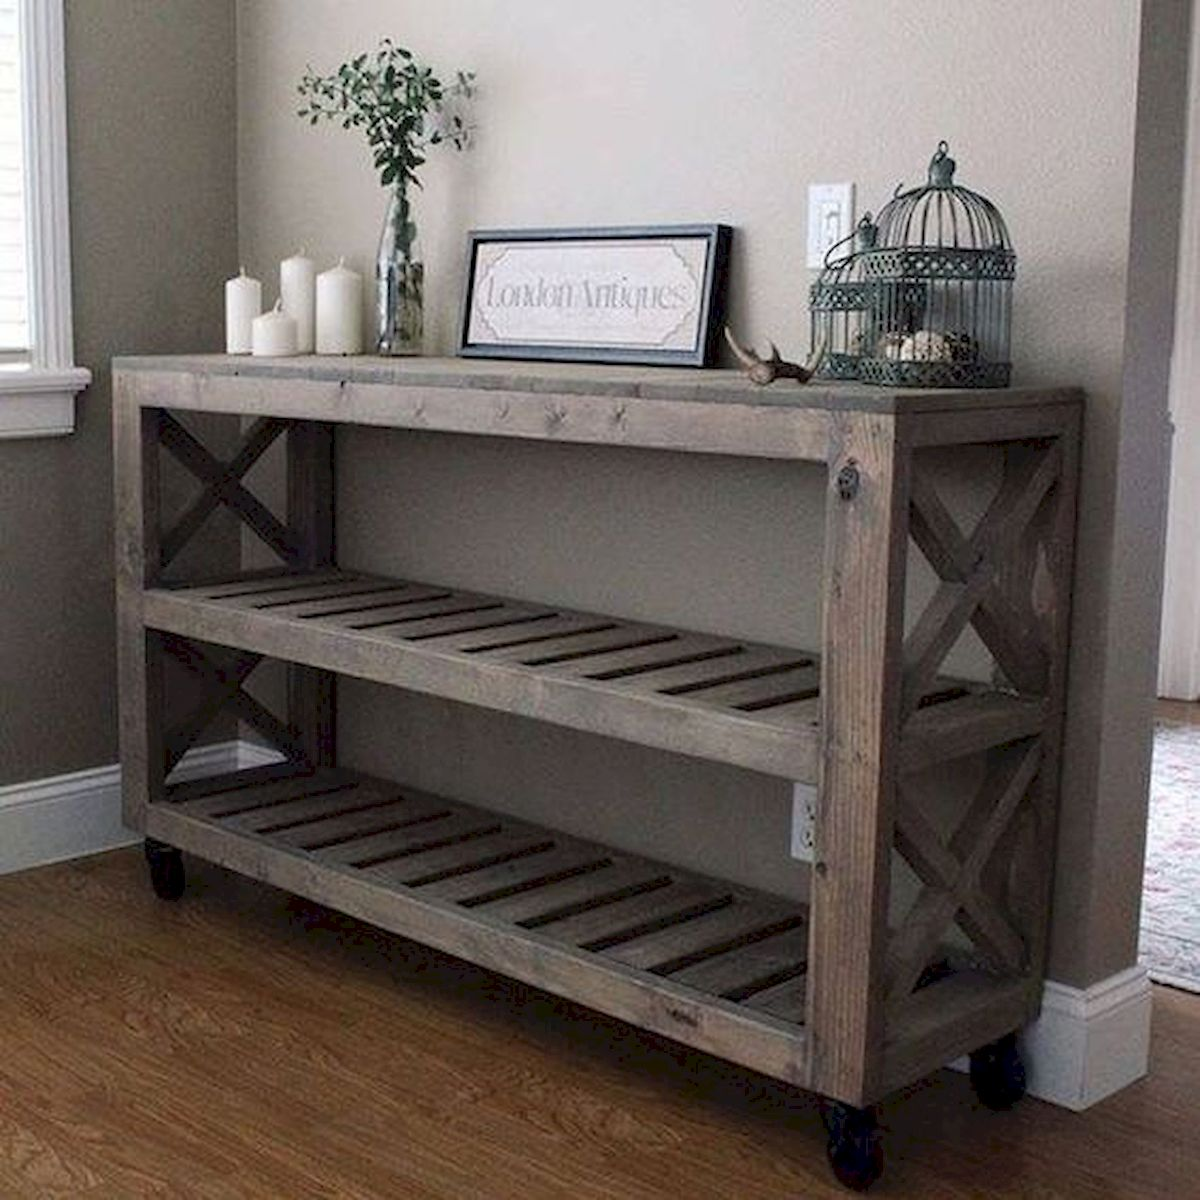 45 Easy and Cheap DIY Wood Furniture Ideas for Small House (12)